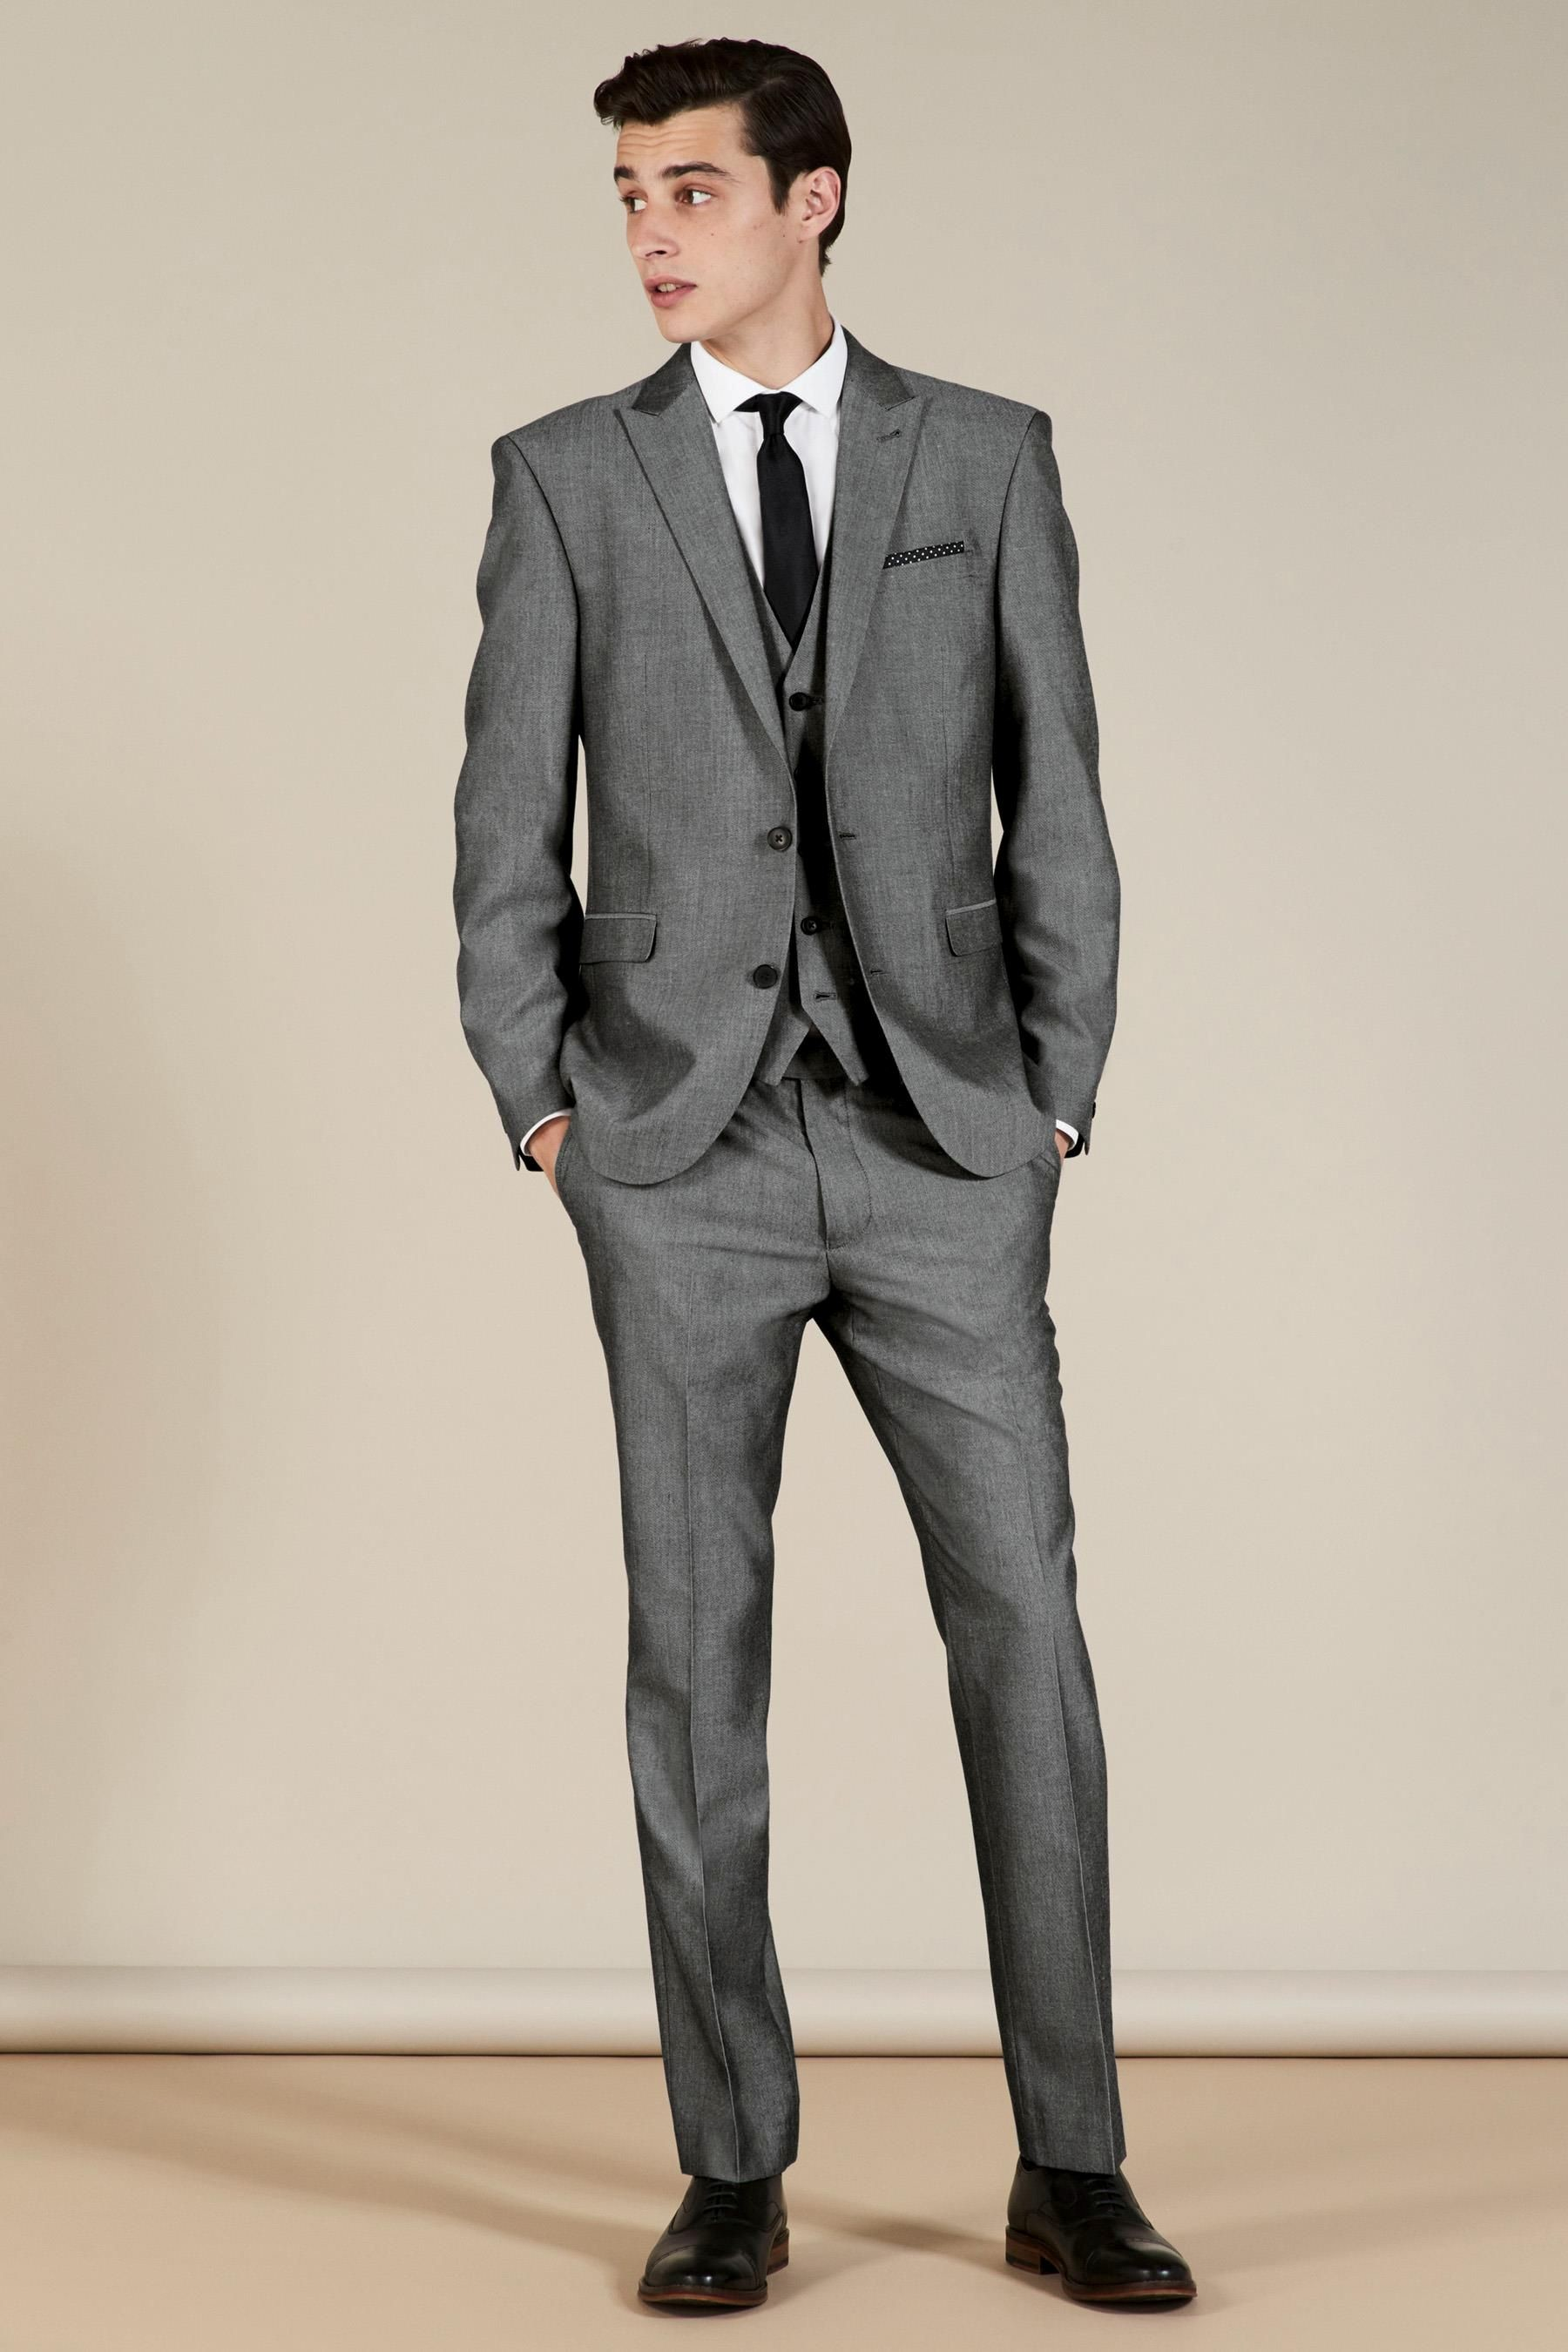 NEXT Tailoring Collection